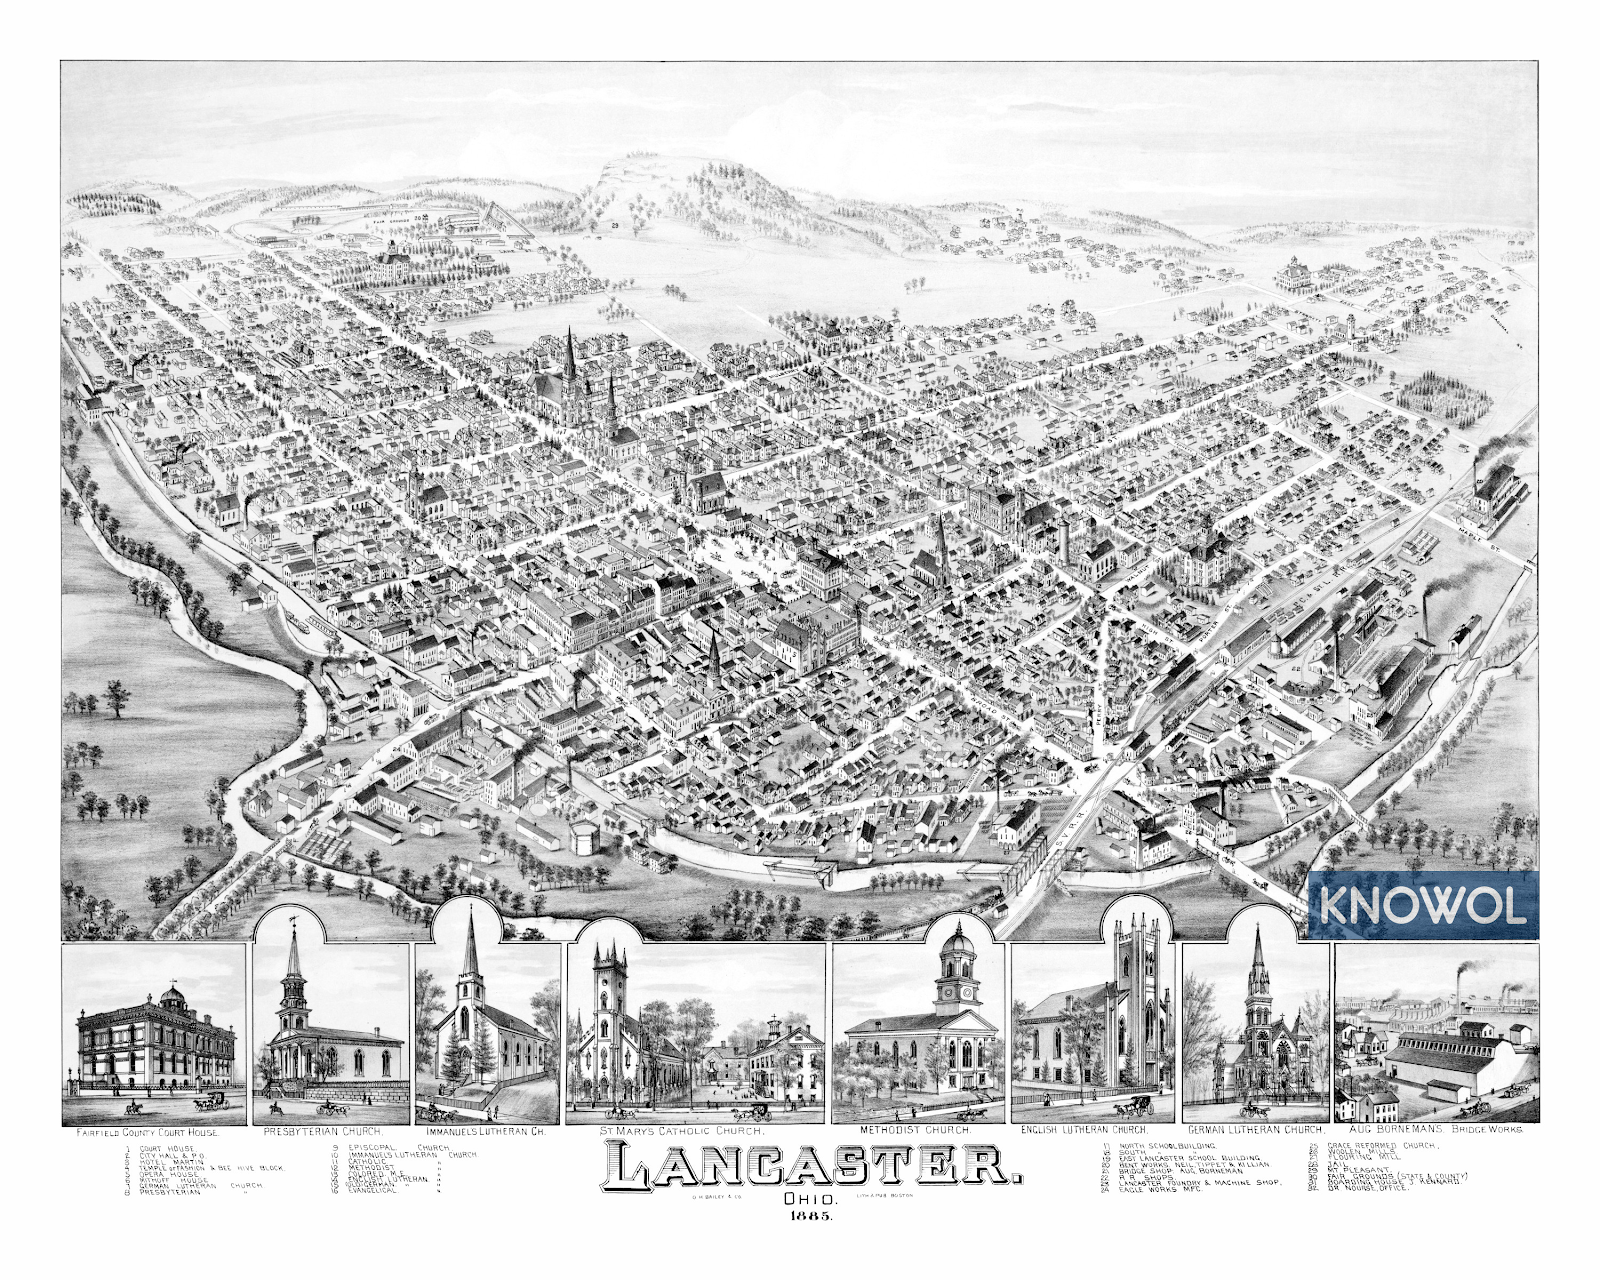 a black and white historic map of lancaster, OH